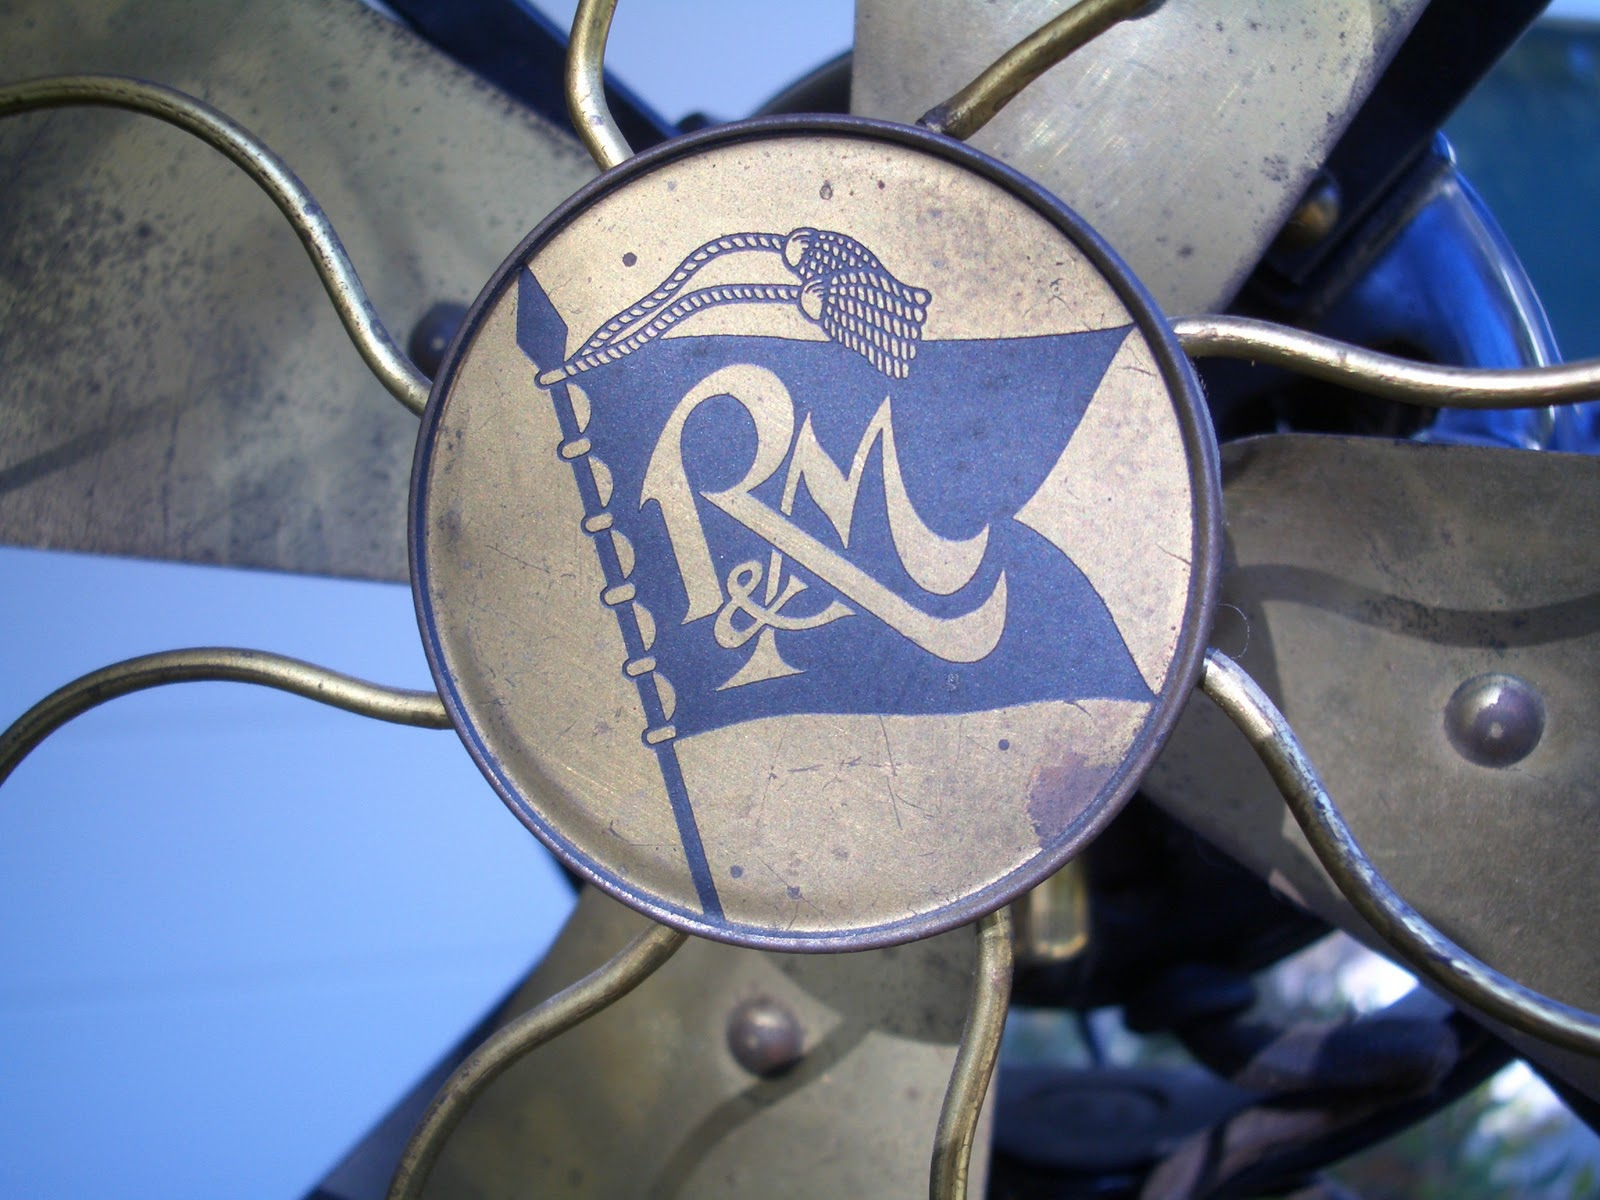 early electric fans robbins myers list desk fans  robbins myers motor tags from the 1911 1917 era have little information on them the list no the first two digits are the model number and the